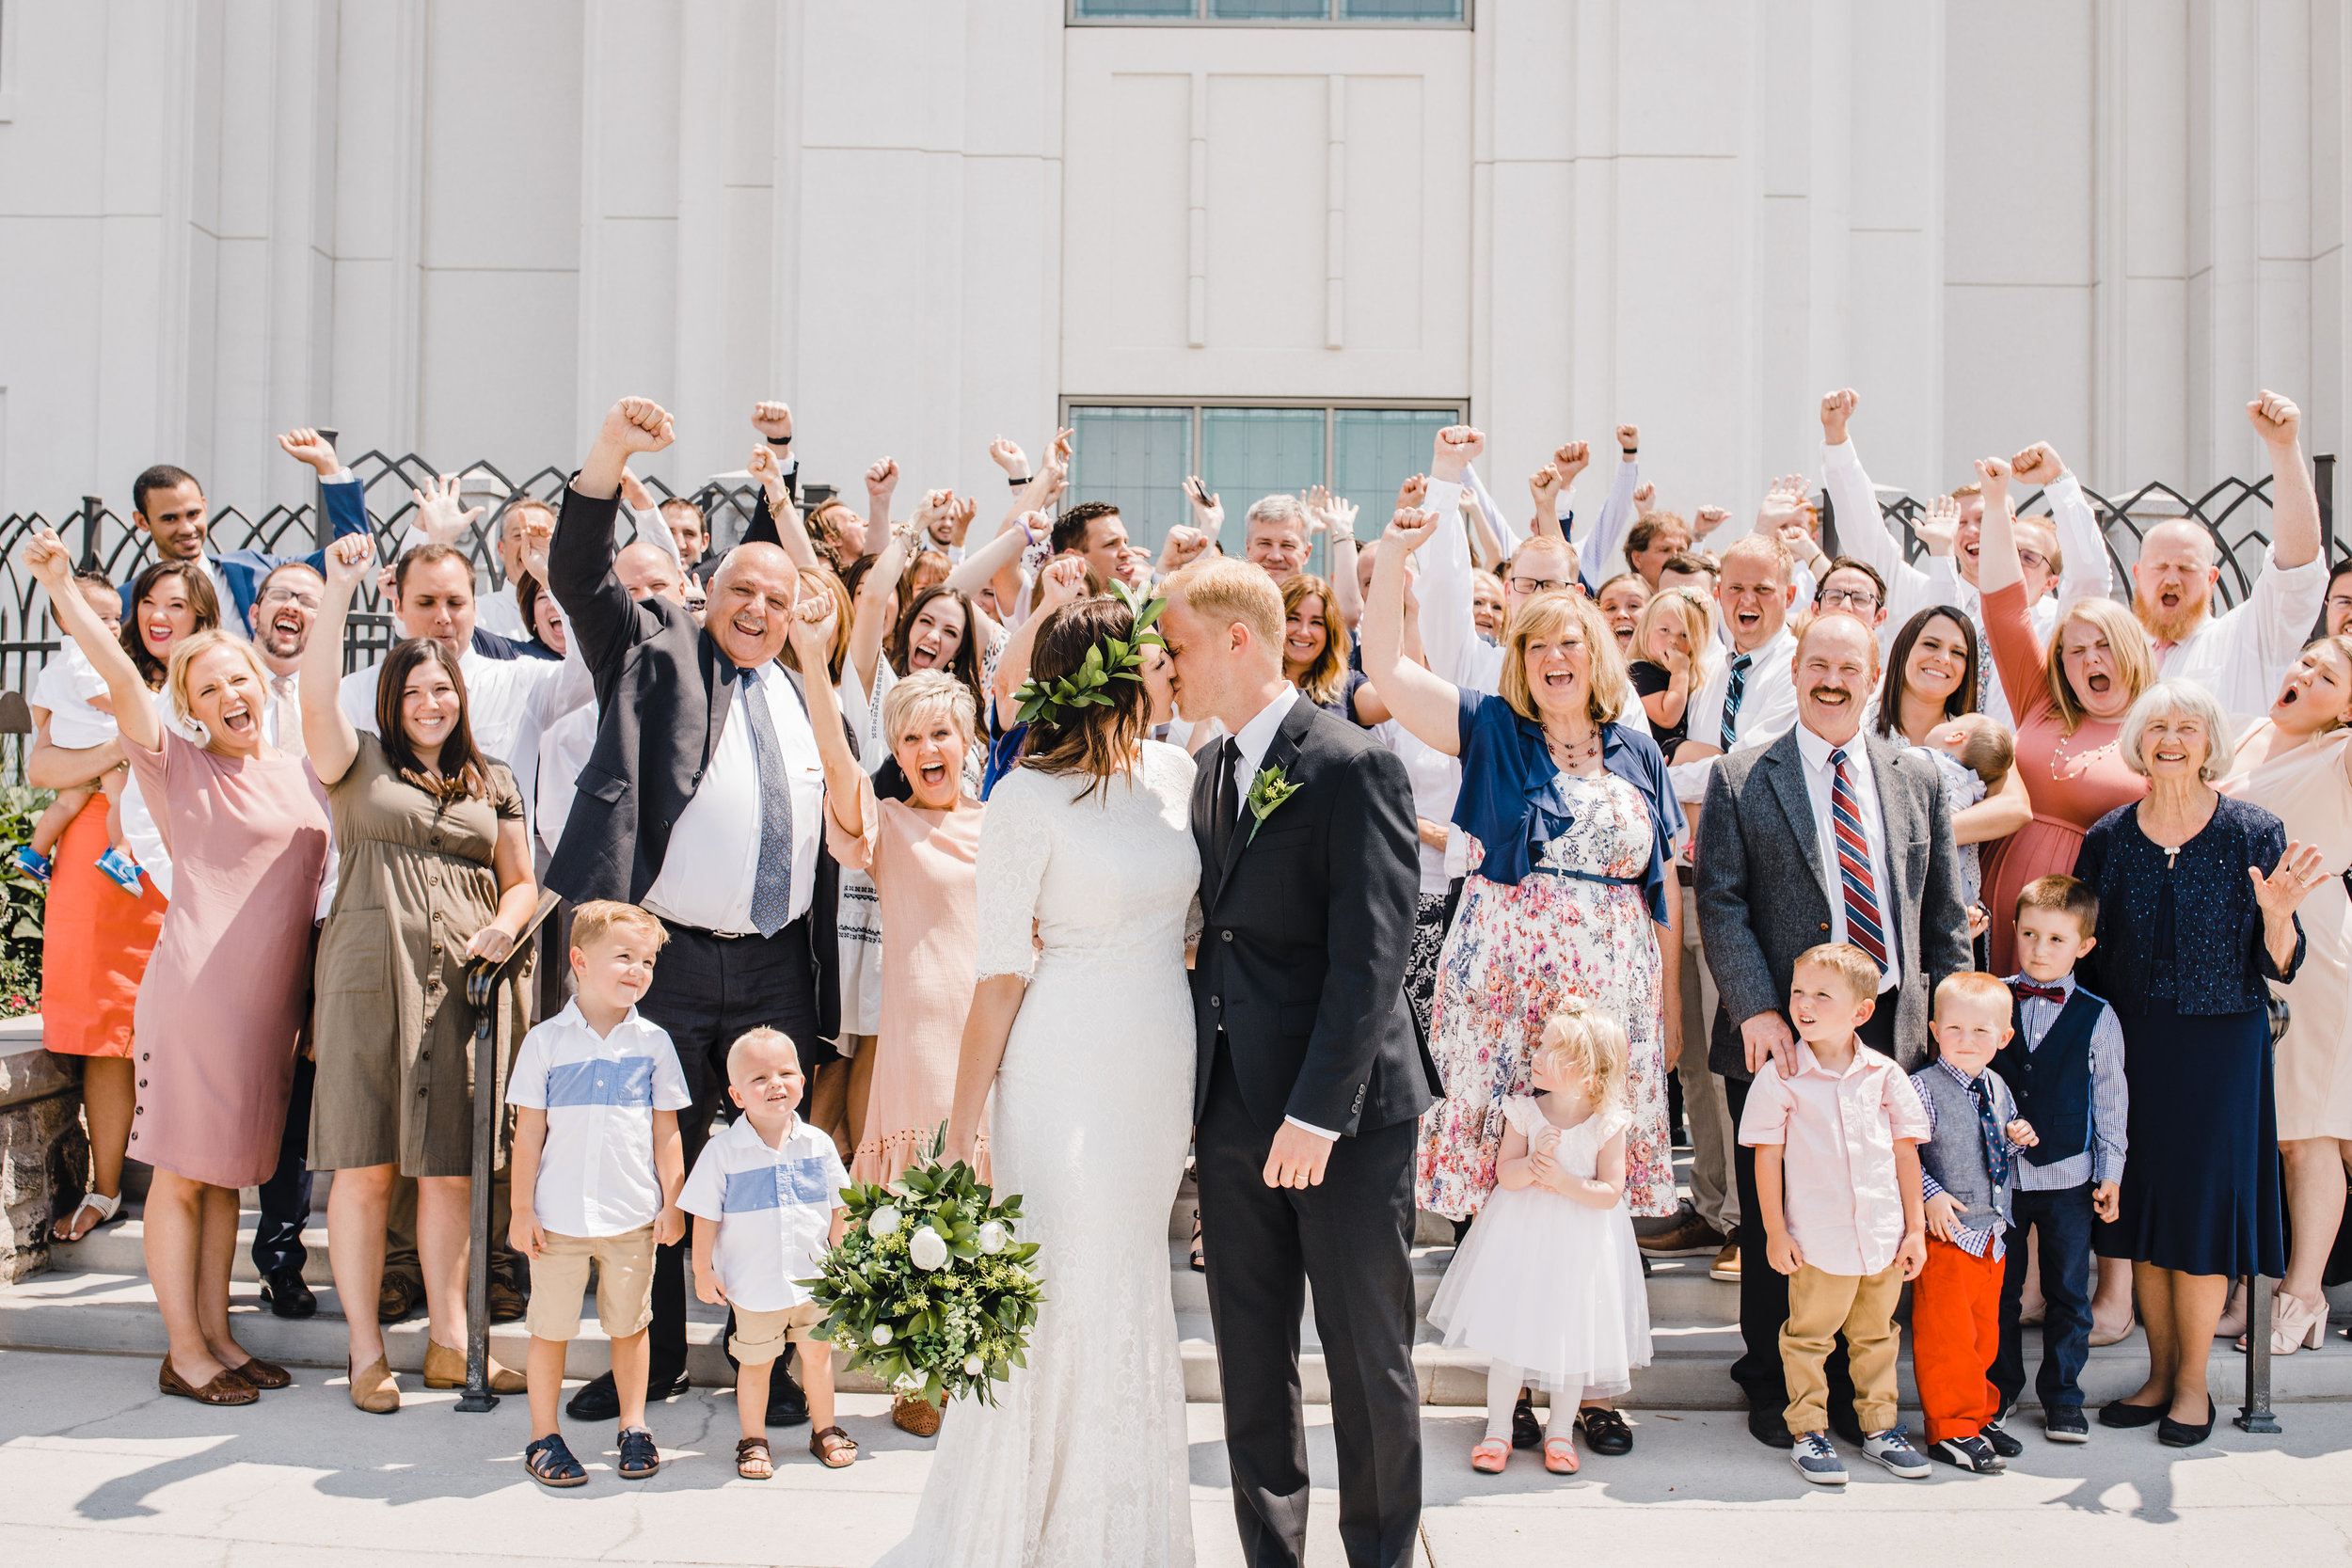 brigham city wedding photographer temple exit lds cheering family happy kissing